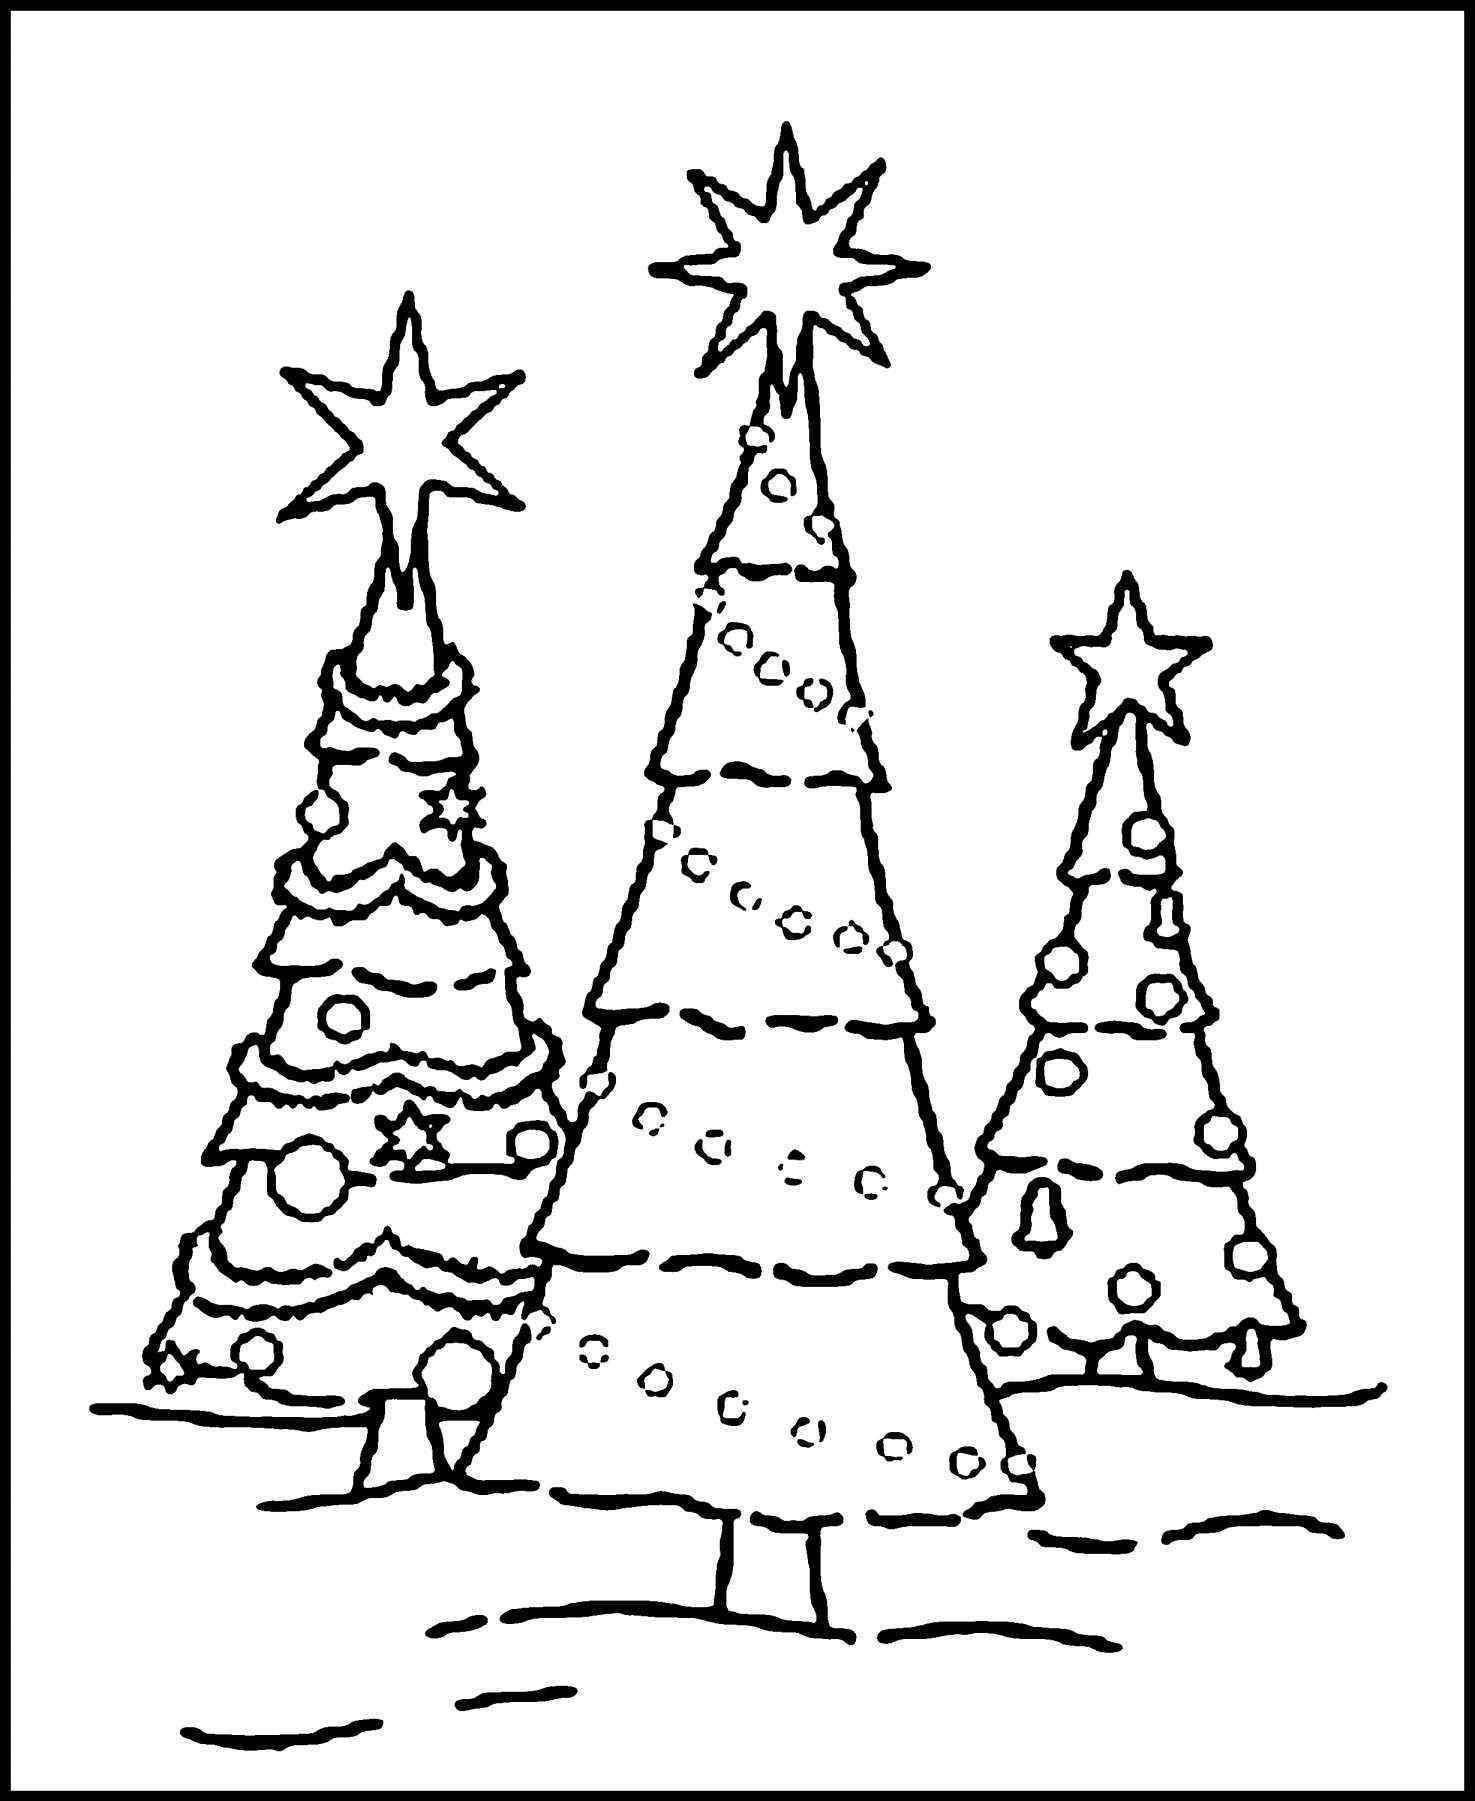 Coloring Pages Of Christmas Trees  Collection 4n - To print for your project